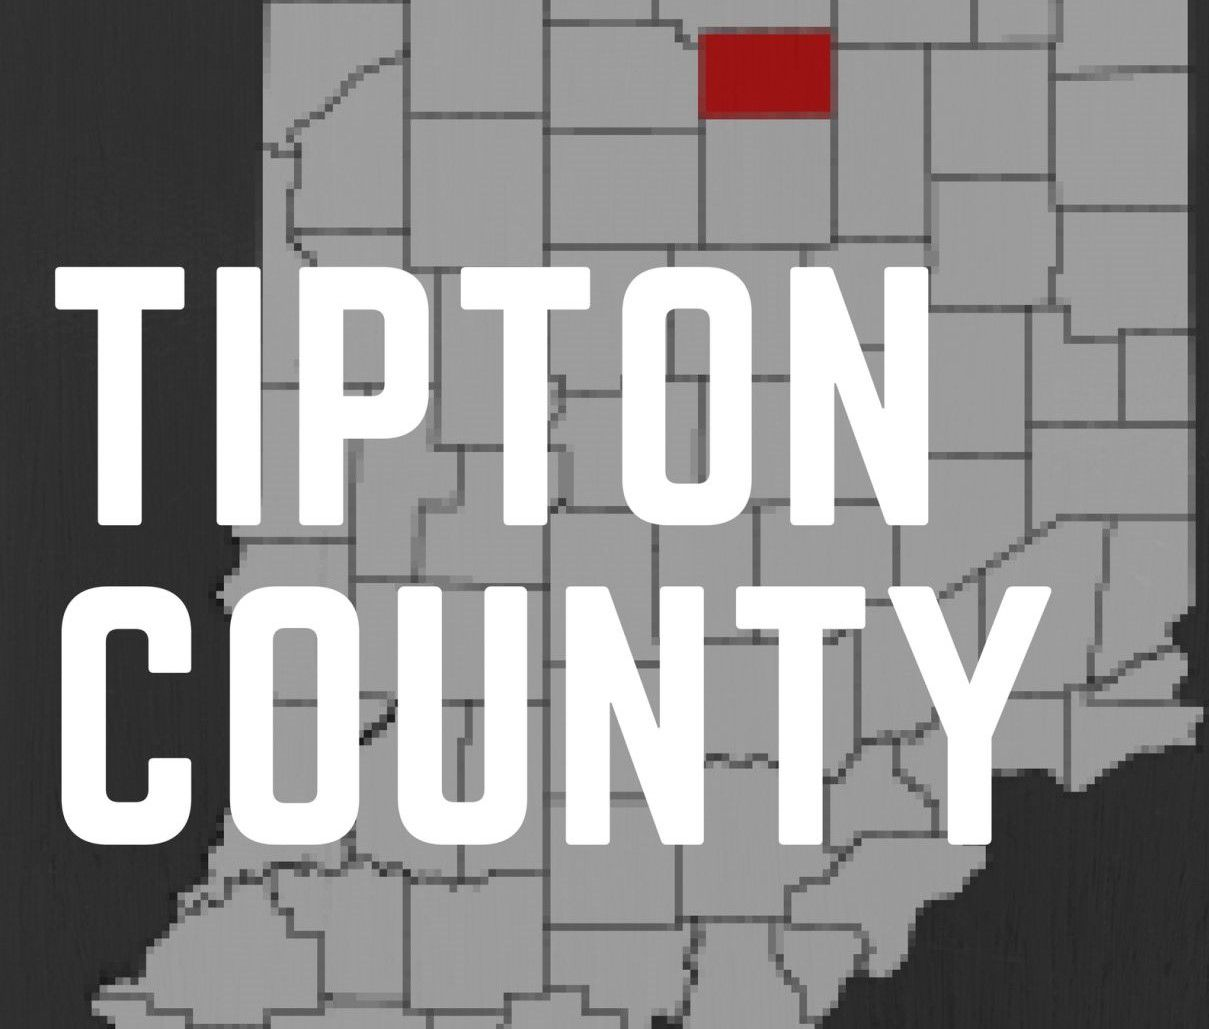 Human Remains Found After Tipton Co. House Fire